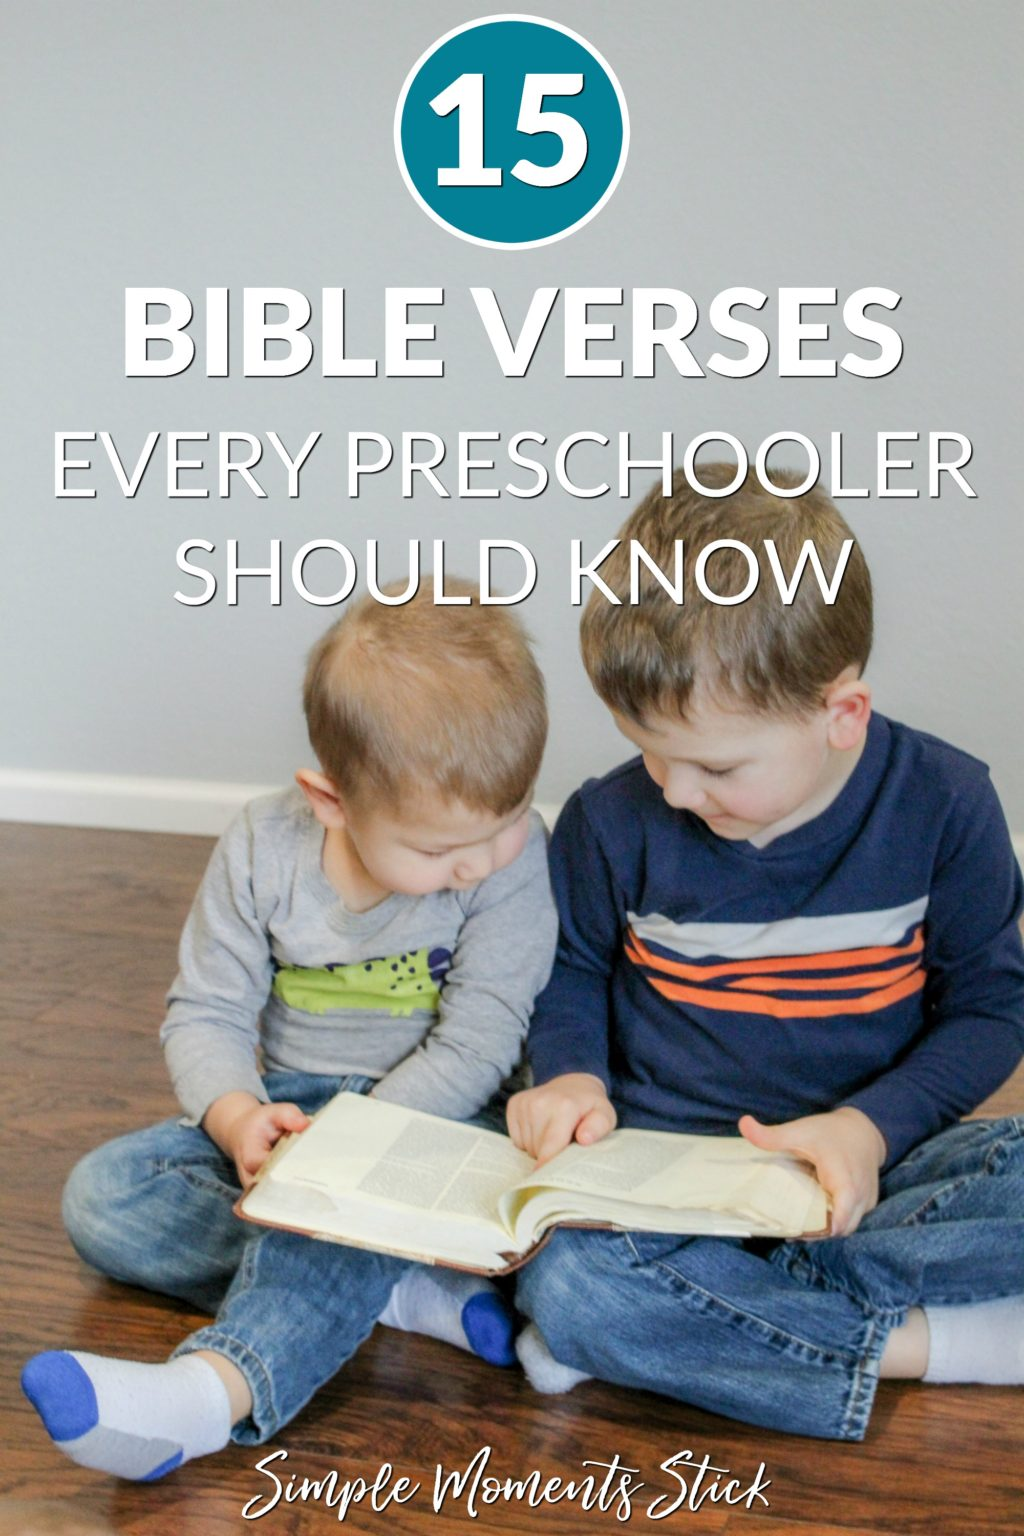 Memory verses for preschoolers. Boys reading the Bible. Bible verses for preschoolers